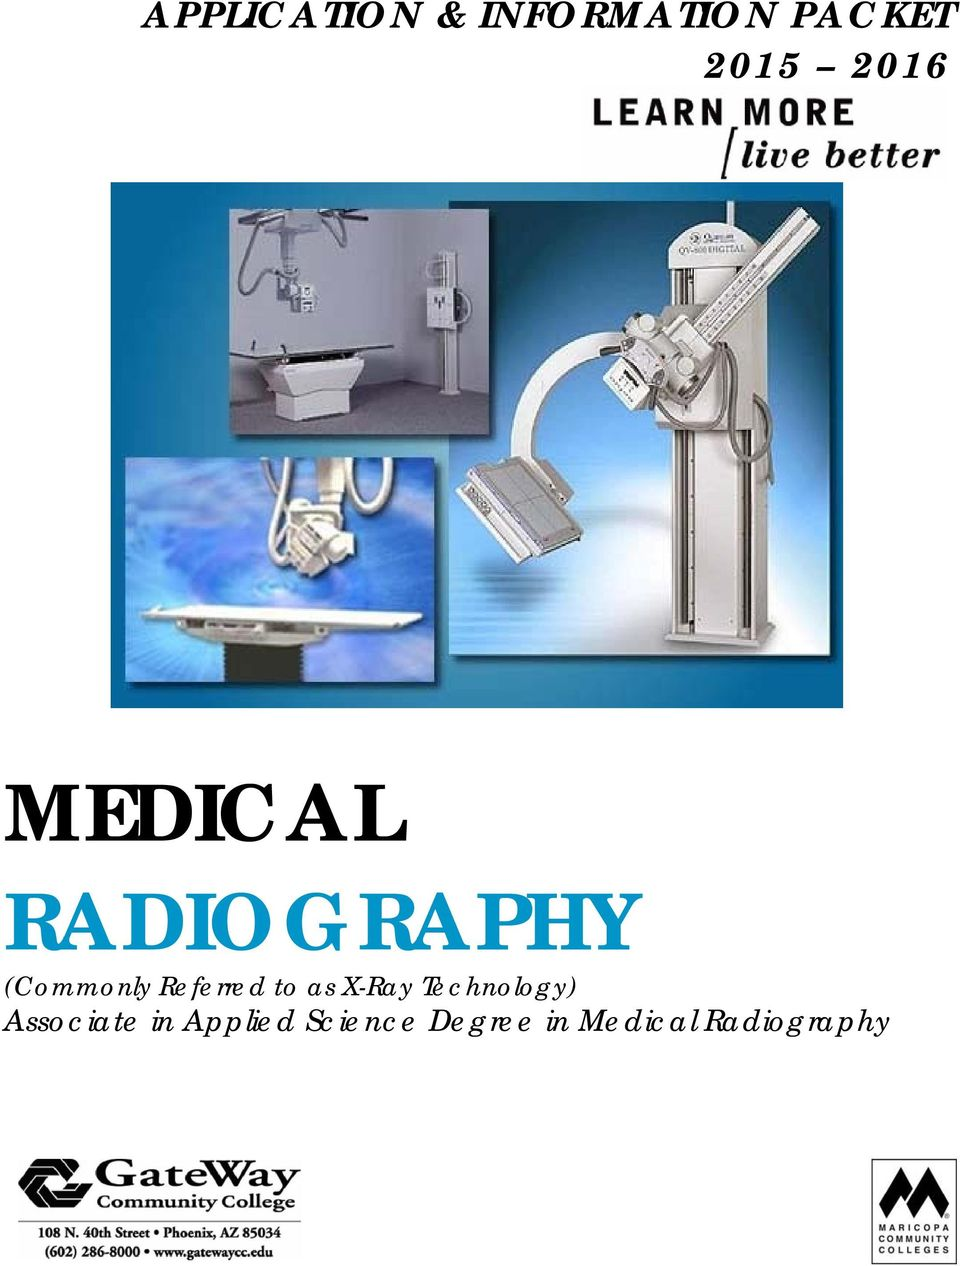 Referred t as X-Ray Technlgy) Assciate